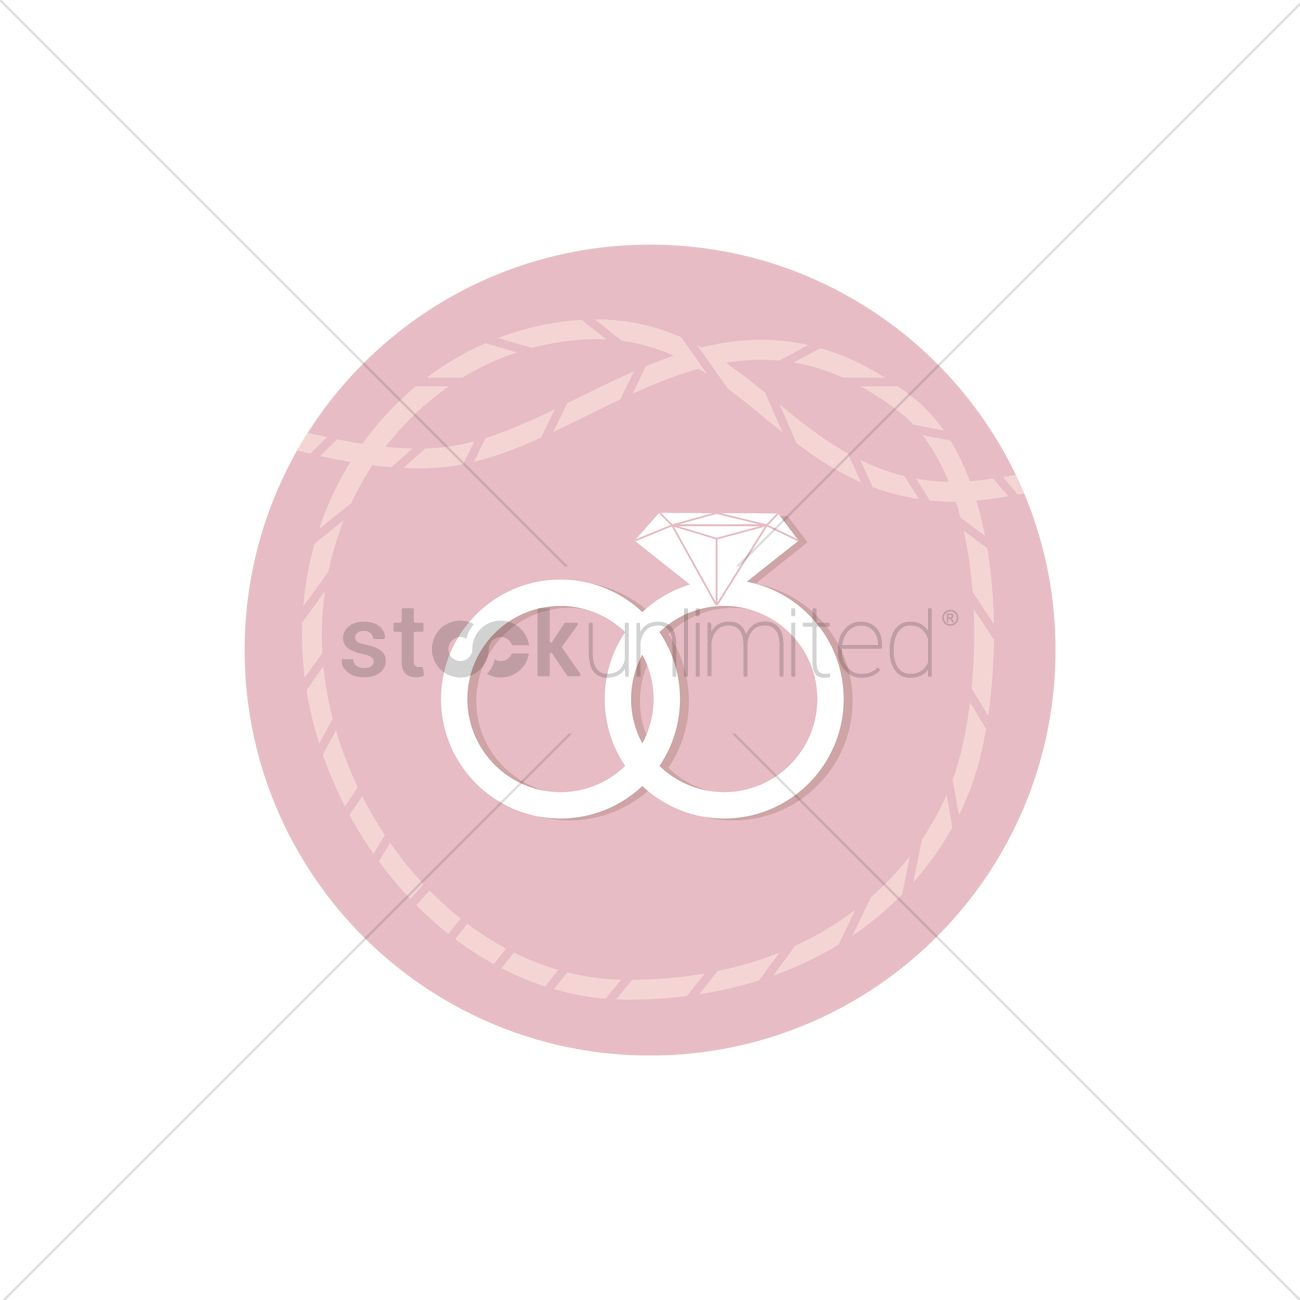 Wedding rings Vector Image - 1333089 | StockUnlimited